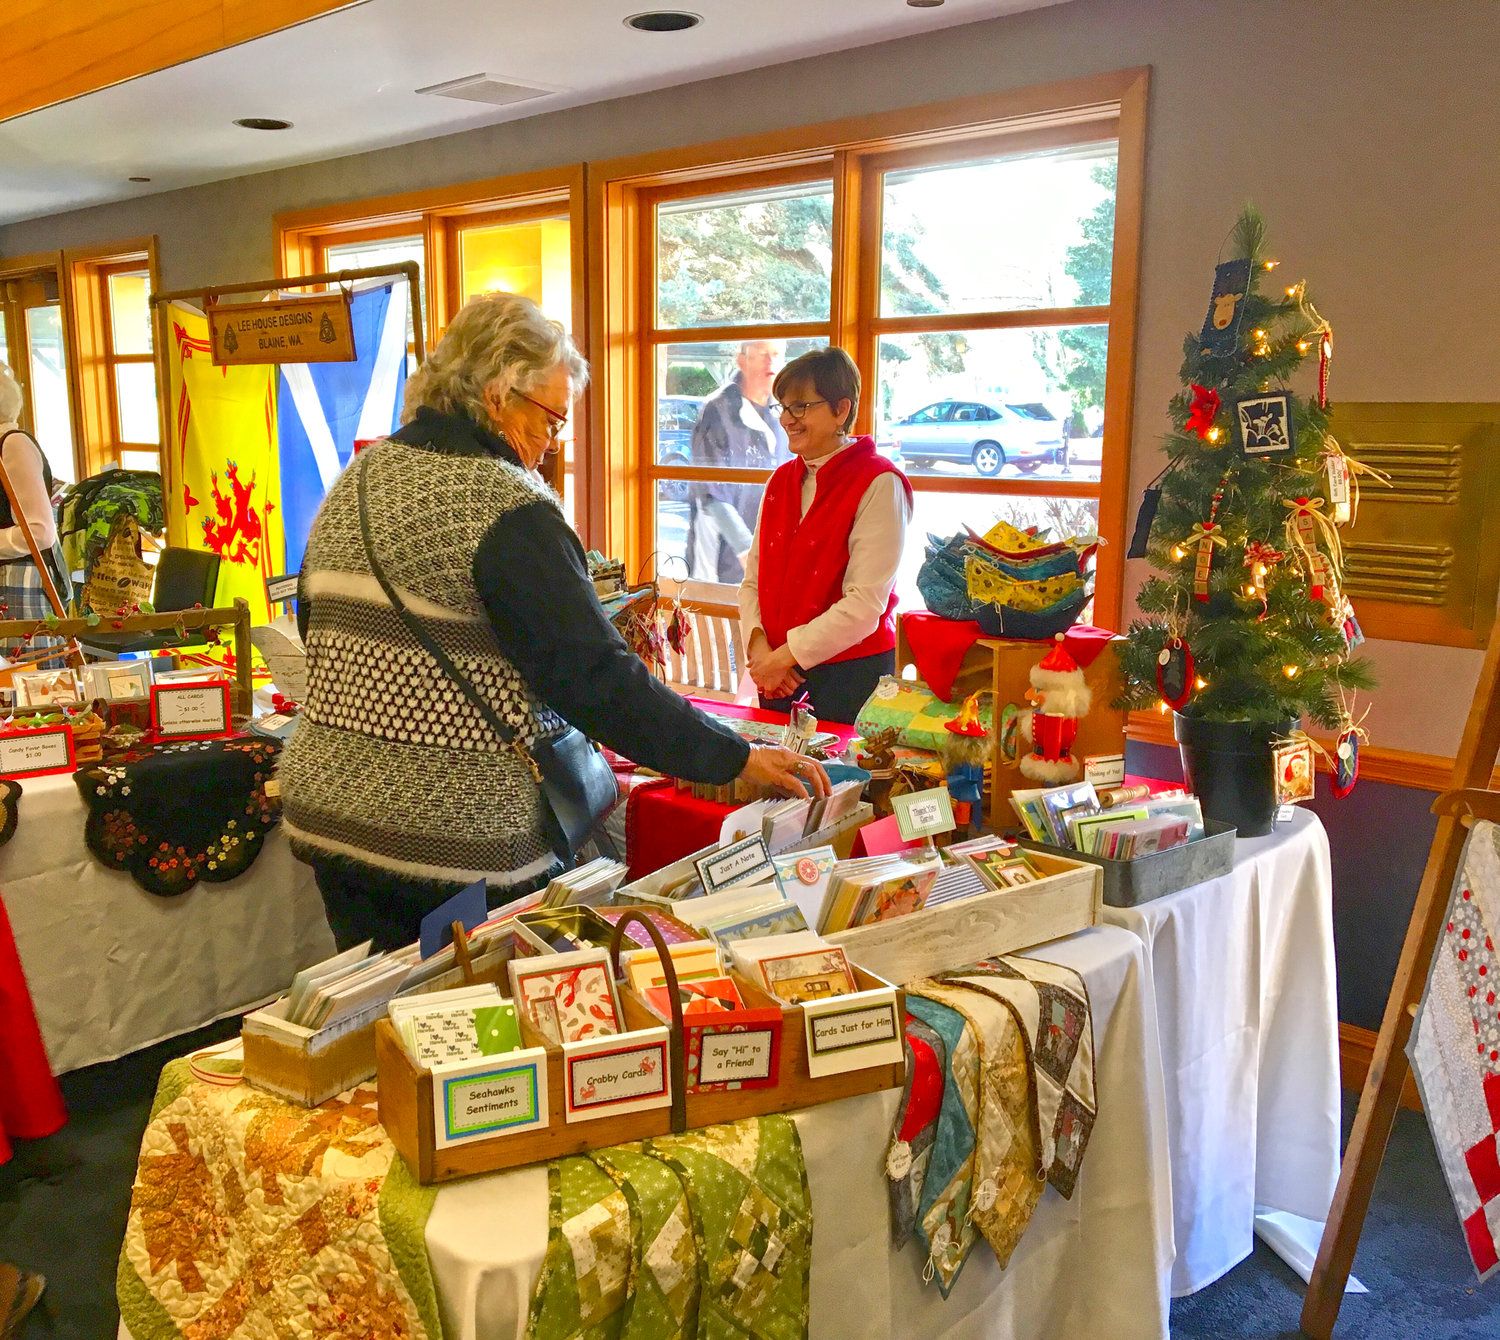 A shopper browses items for sale at last year's holiday boutique and craft fair hosted by the Semiahmoo Women's Club.